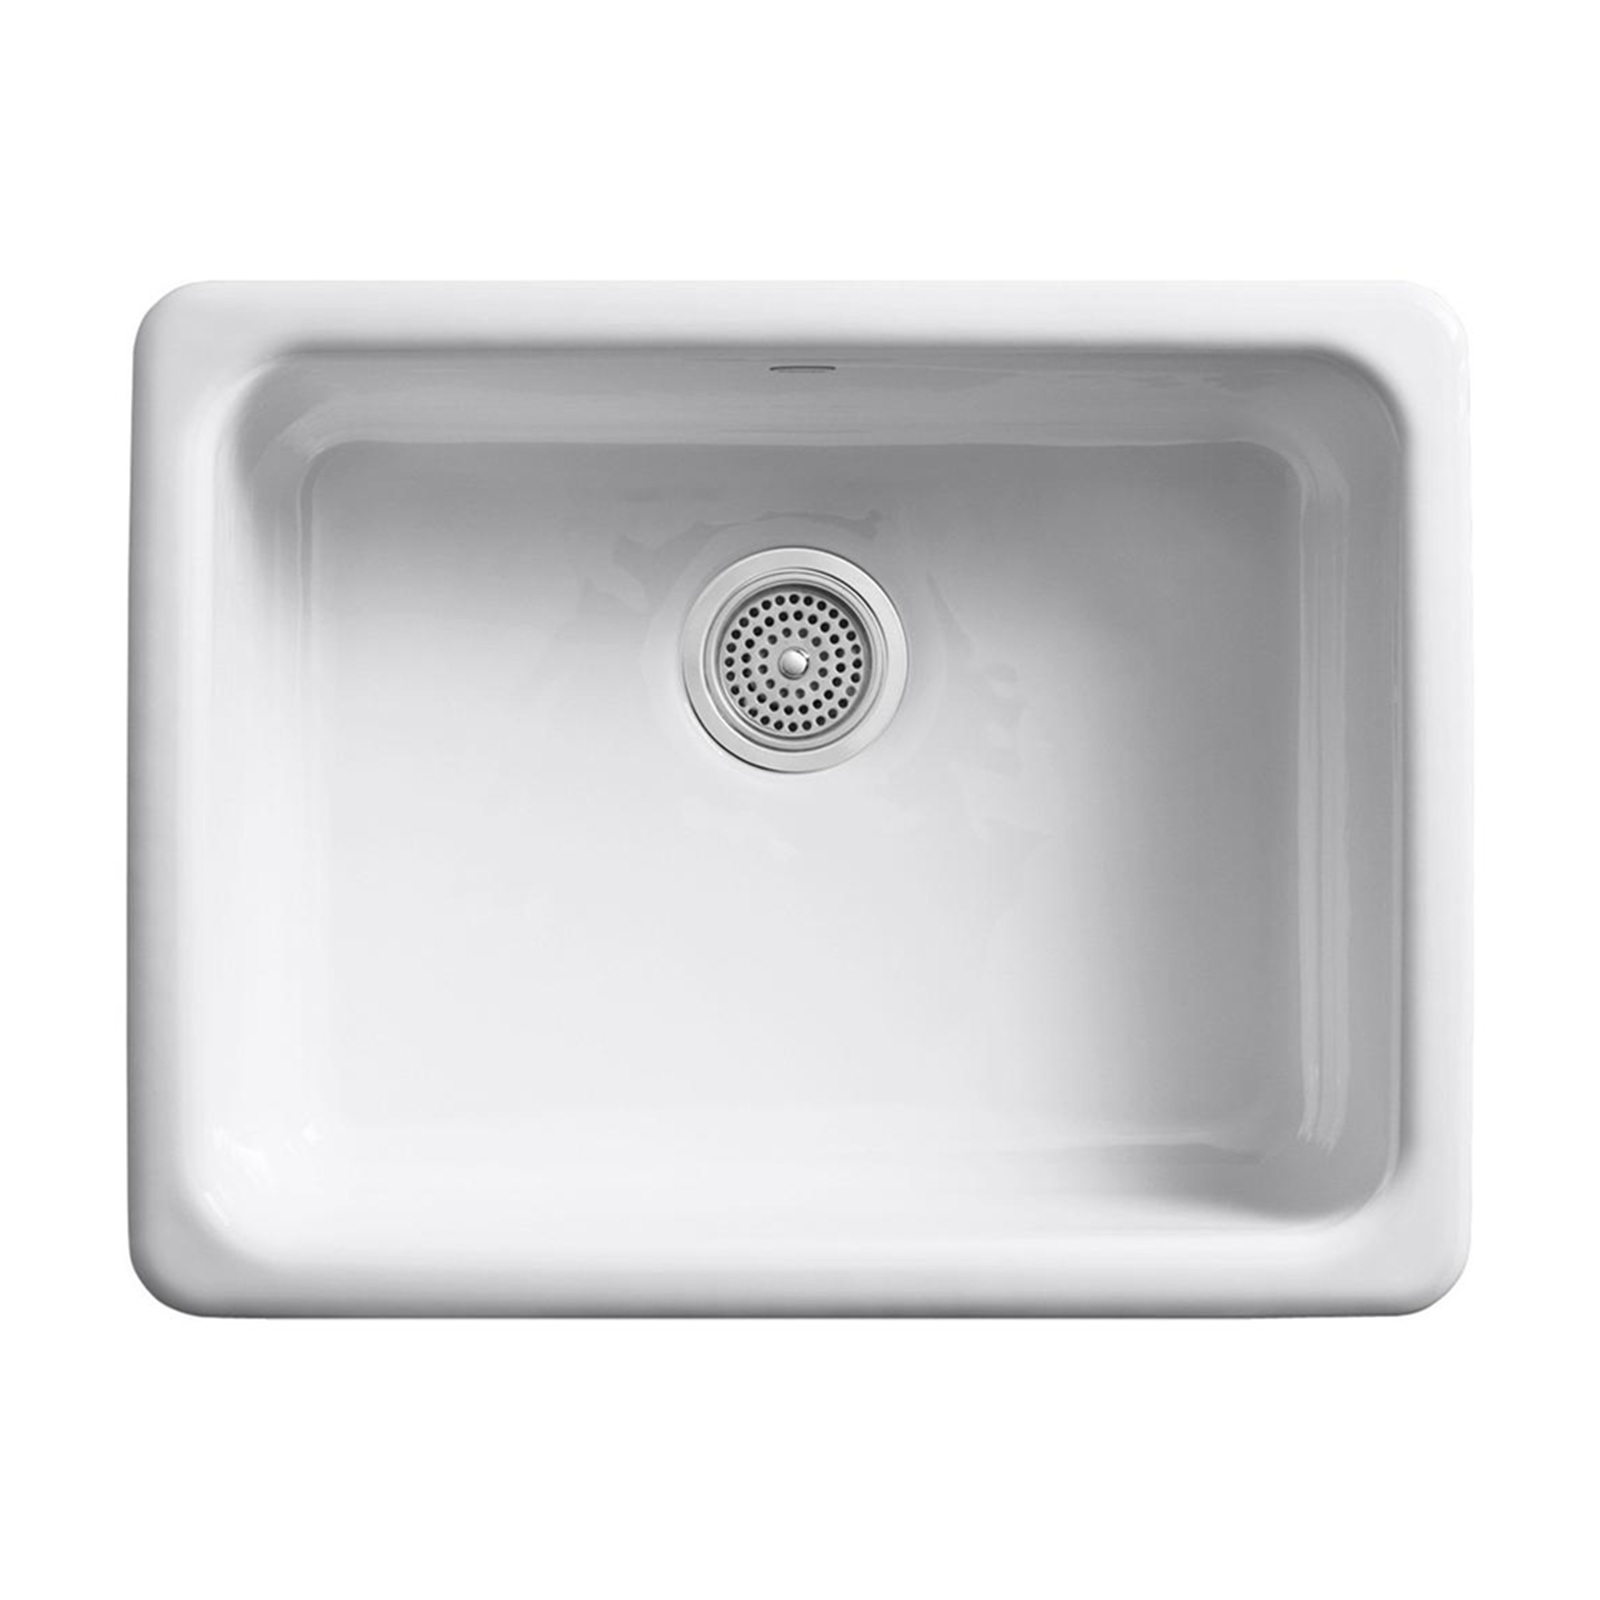 single bowl cast iron kitchen sink how much to remodel a sinks sears kohler k 6585 0 tones self rimming undercounter